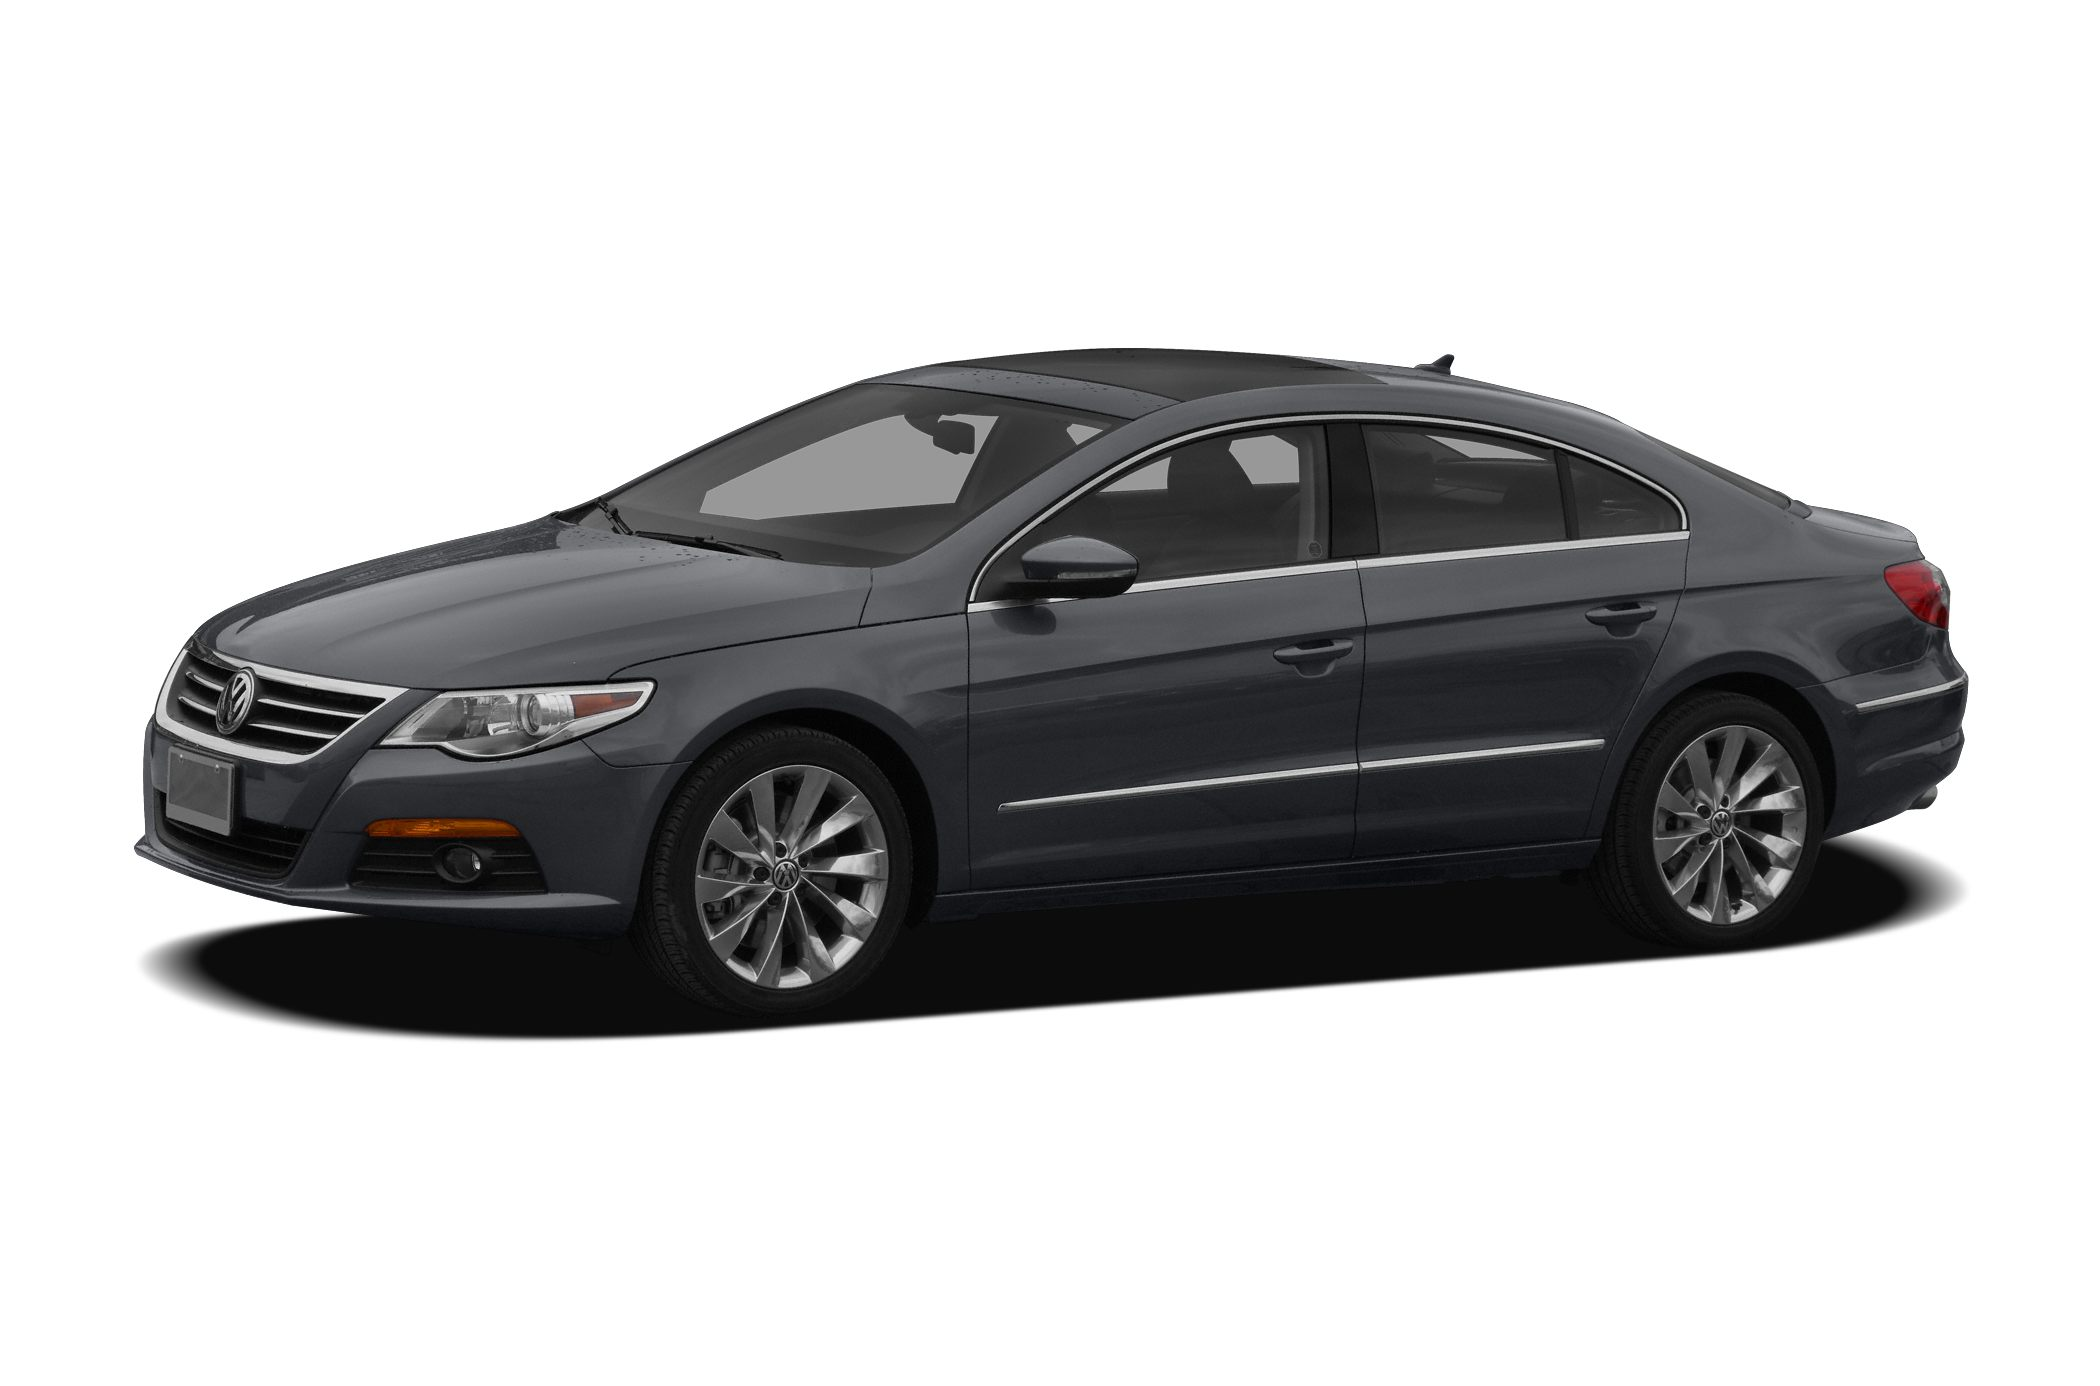 2009 Volkswagen CC Sport Sedan for sale in Dallas for $11,880 with 104,001 miles